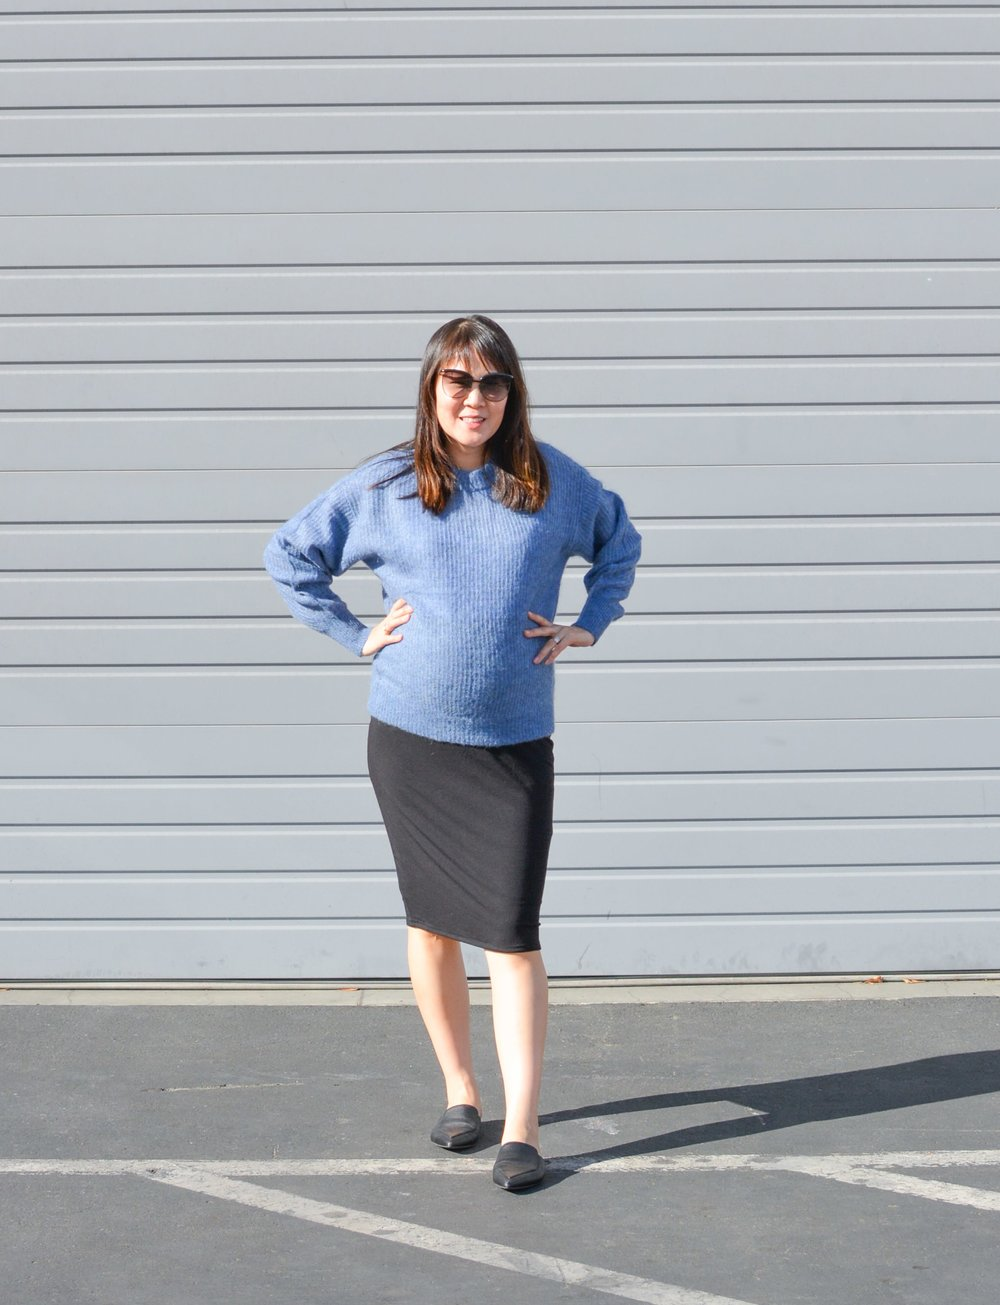 Everlane Review Oversized Alpaca Crew (1 of 3)-min.jpg